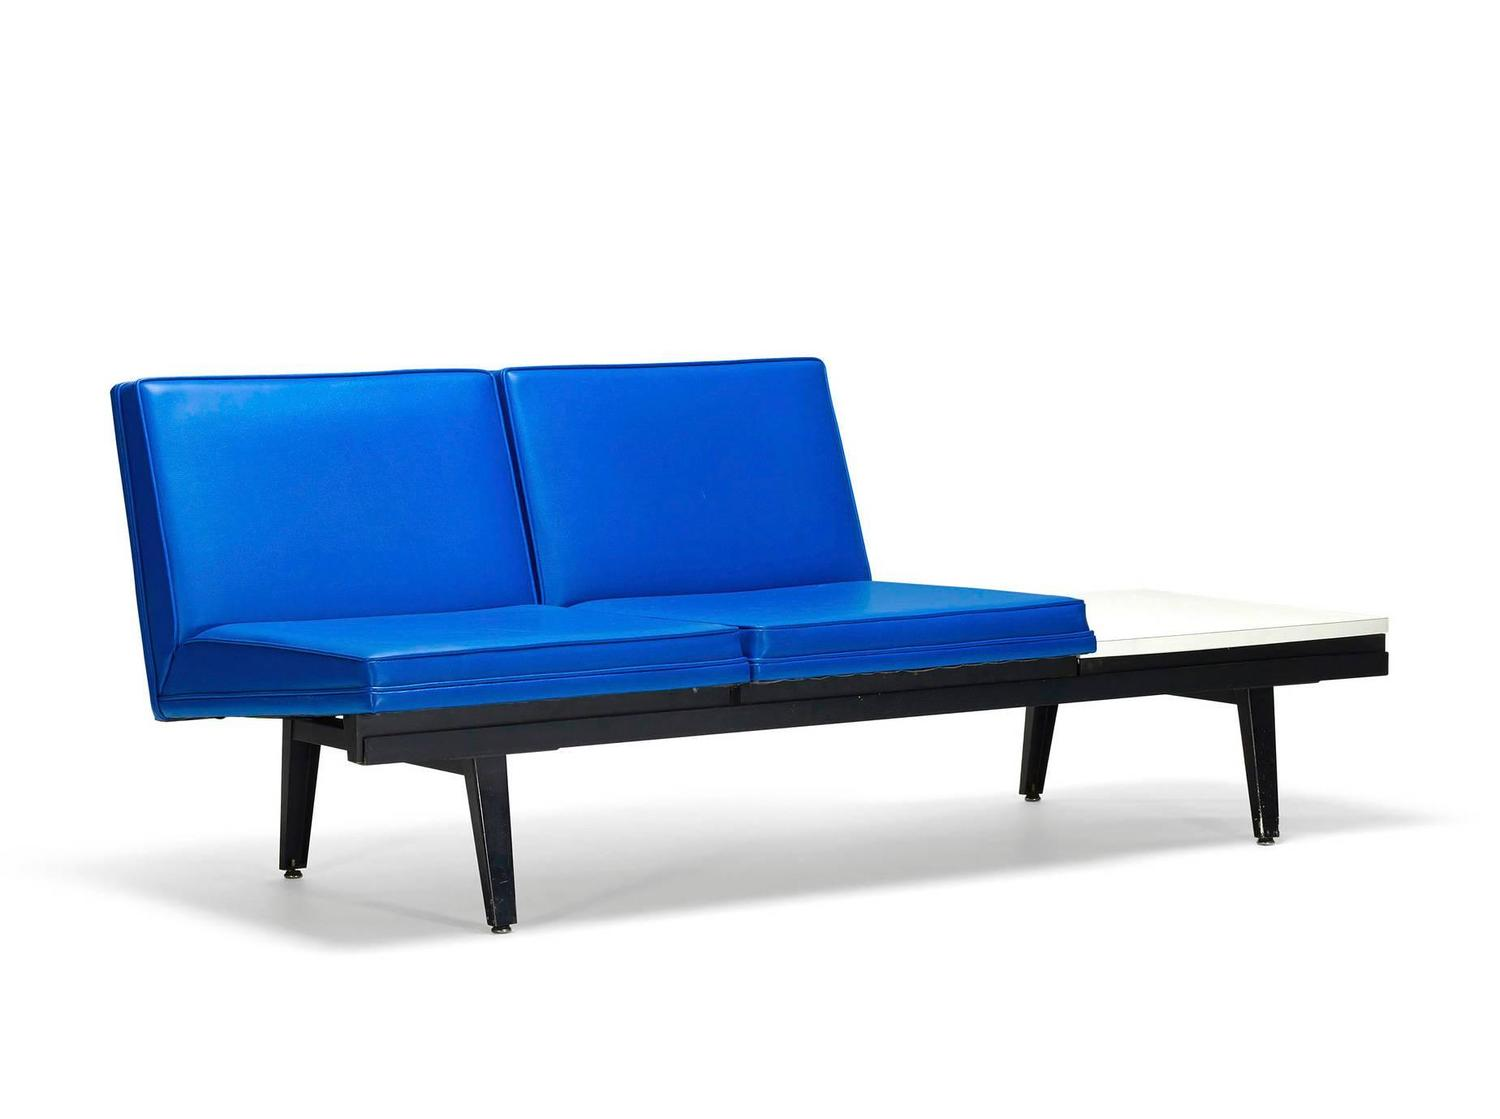 Steel Frame Sofa By George Nelson For Sale At 1stdibs